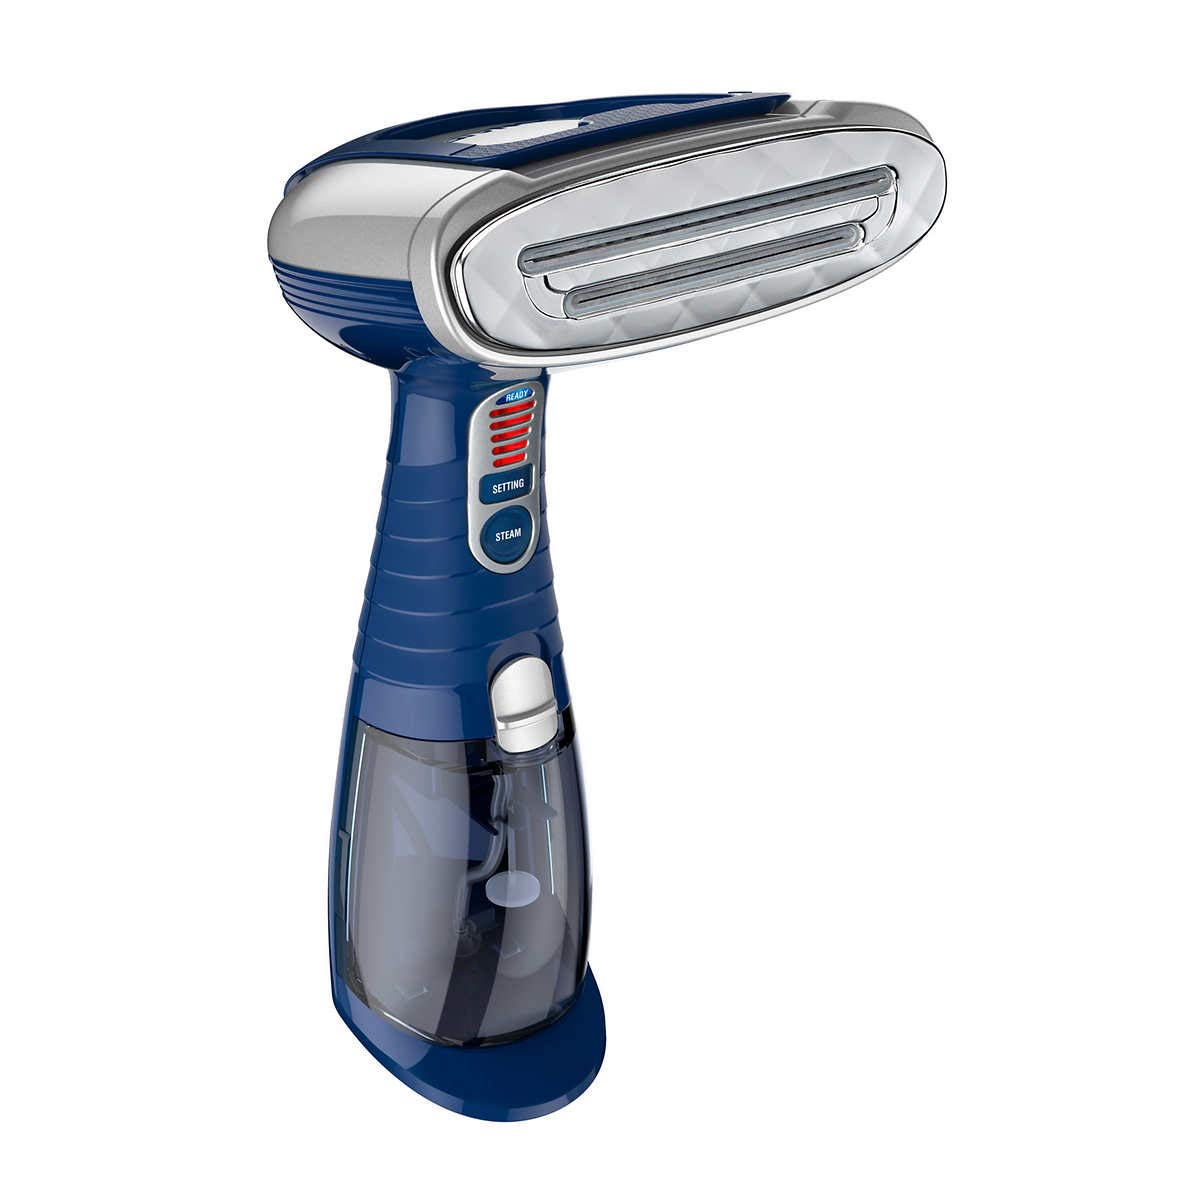 Super Special Max 51% OFF SALE held Conair Handheld Garment Steamer Steam 1Count Turbo Extreme